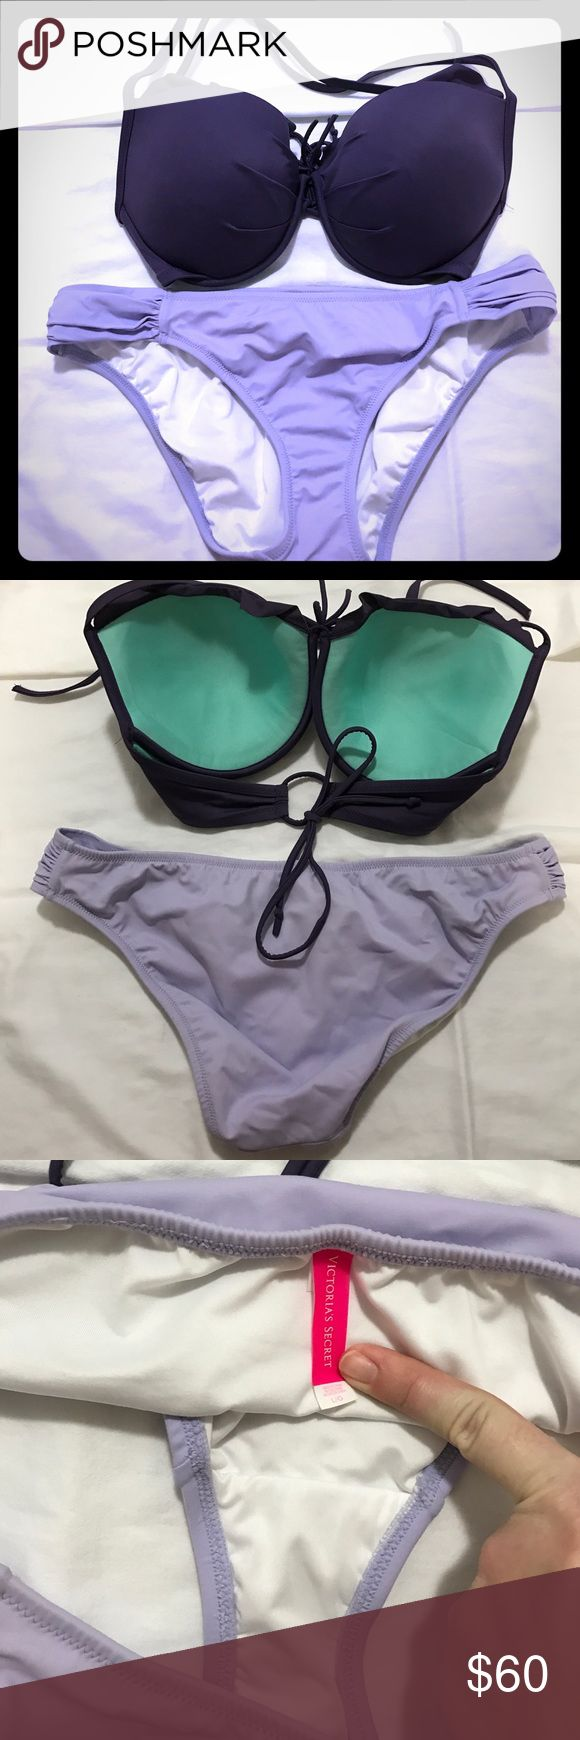 Victoria's Secret purple bikini set Two toned bikini set. The top is a 34DD but a 34D would fit too. Worn top twice and bottoms once. I am selling as a set but will consider selling as separates just message me! Always willing to except offers! Victoria's Secret Swim Bikinis